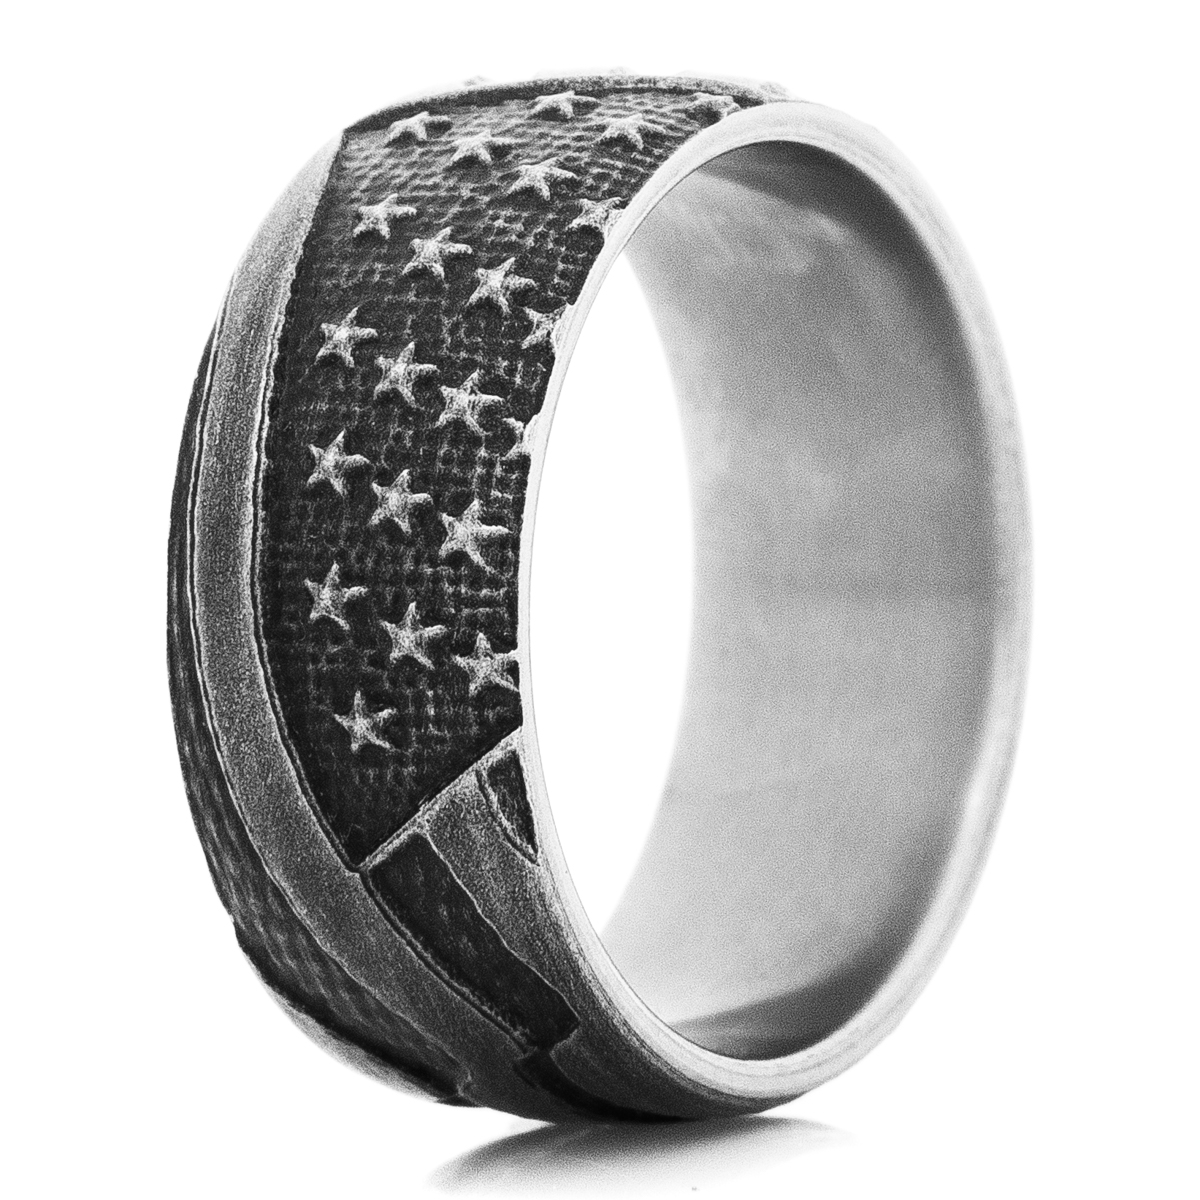 Titanium Old Glory Ring